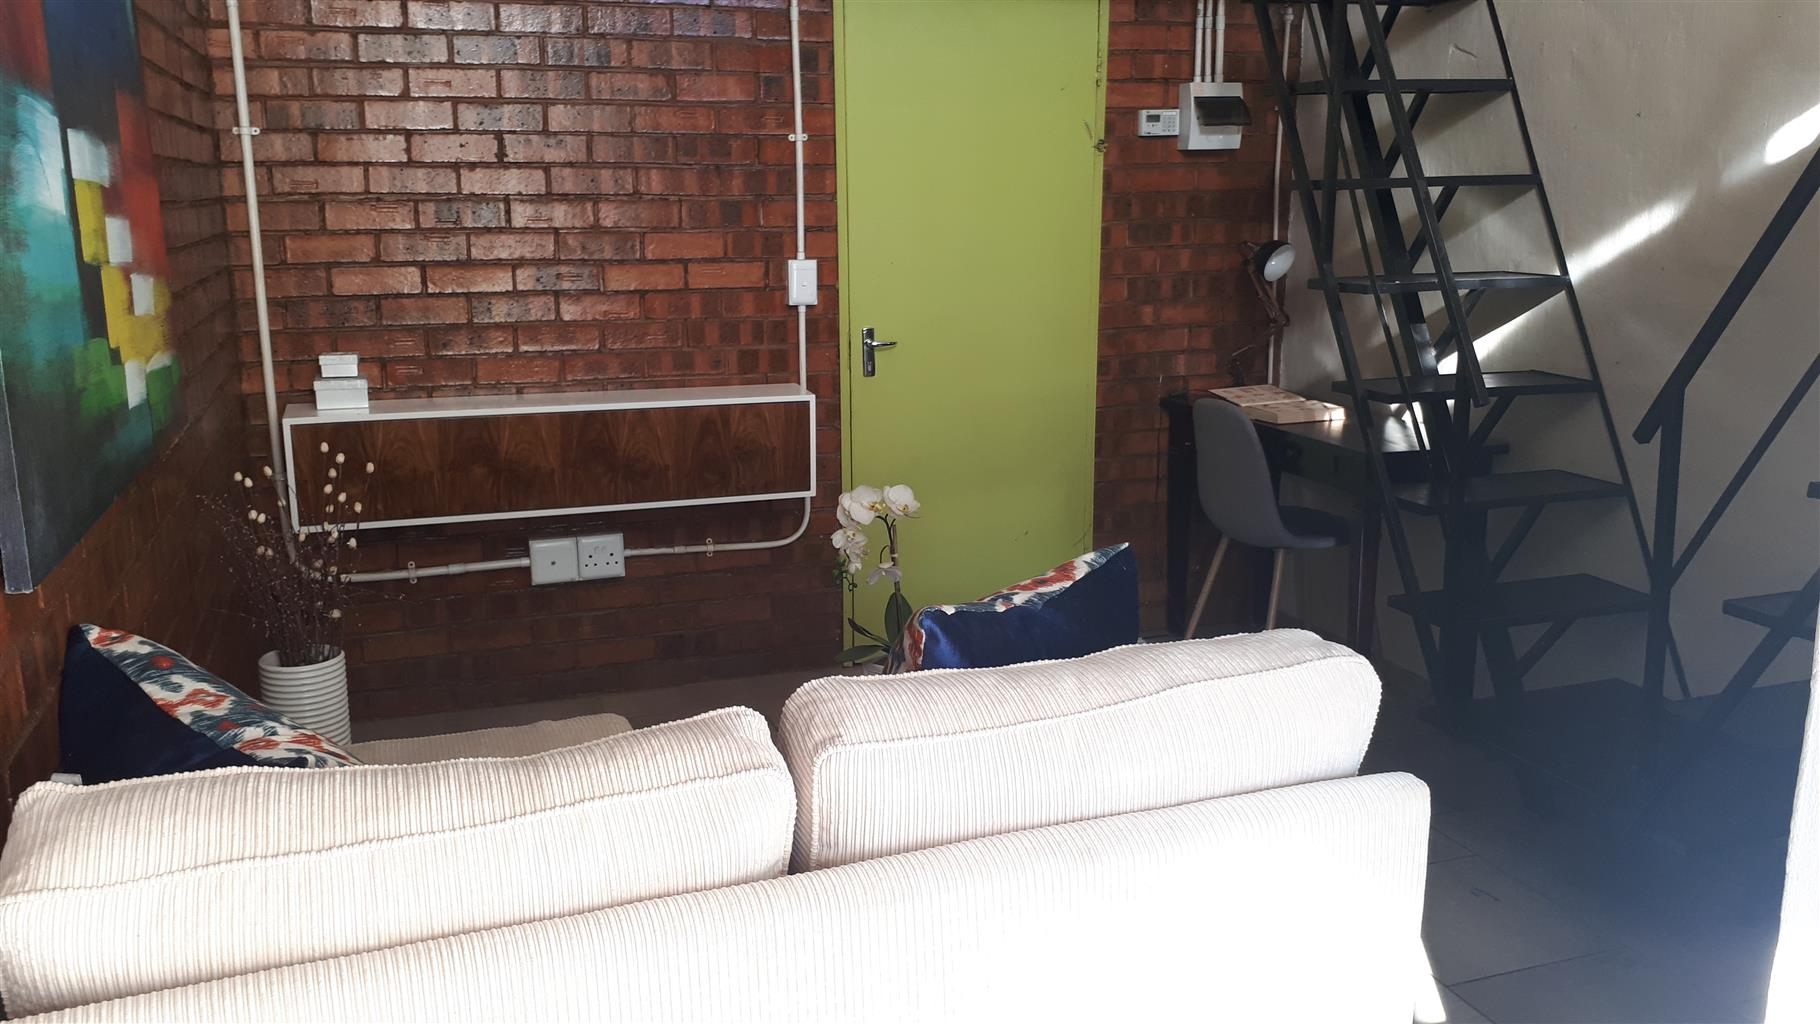 Pleasing Furniture Shops In Jhb Cbd Welcome To The Bed Shop Dailytribune Chair Design For Home Dailytribuneorg